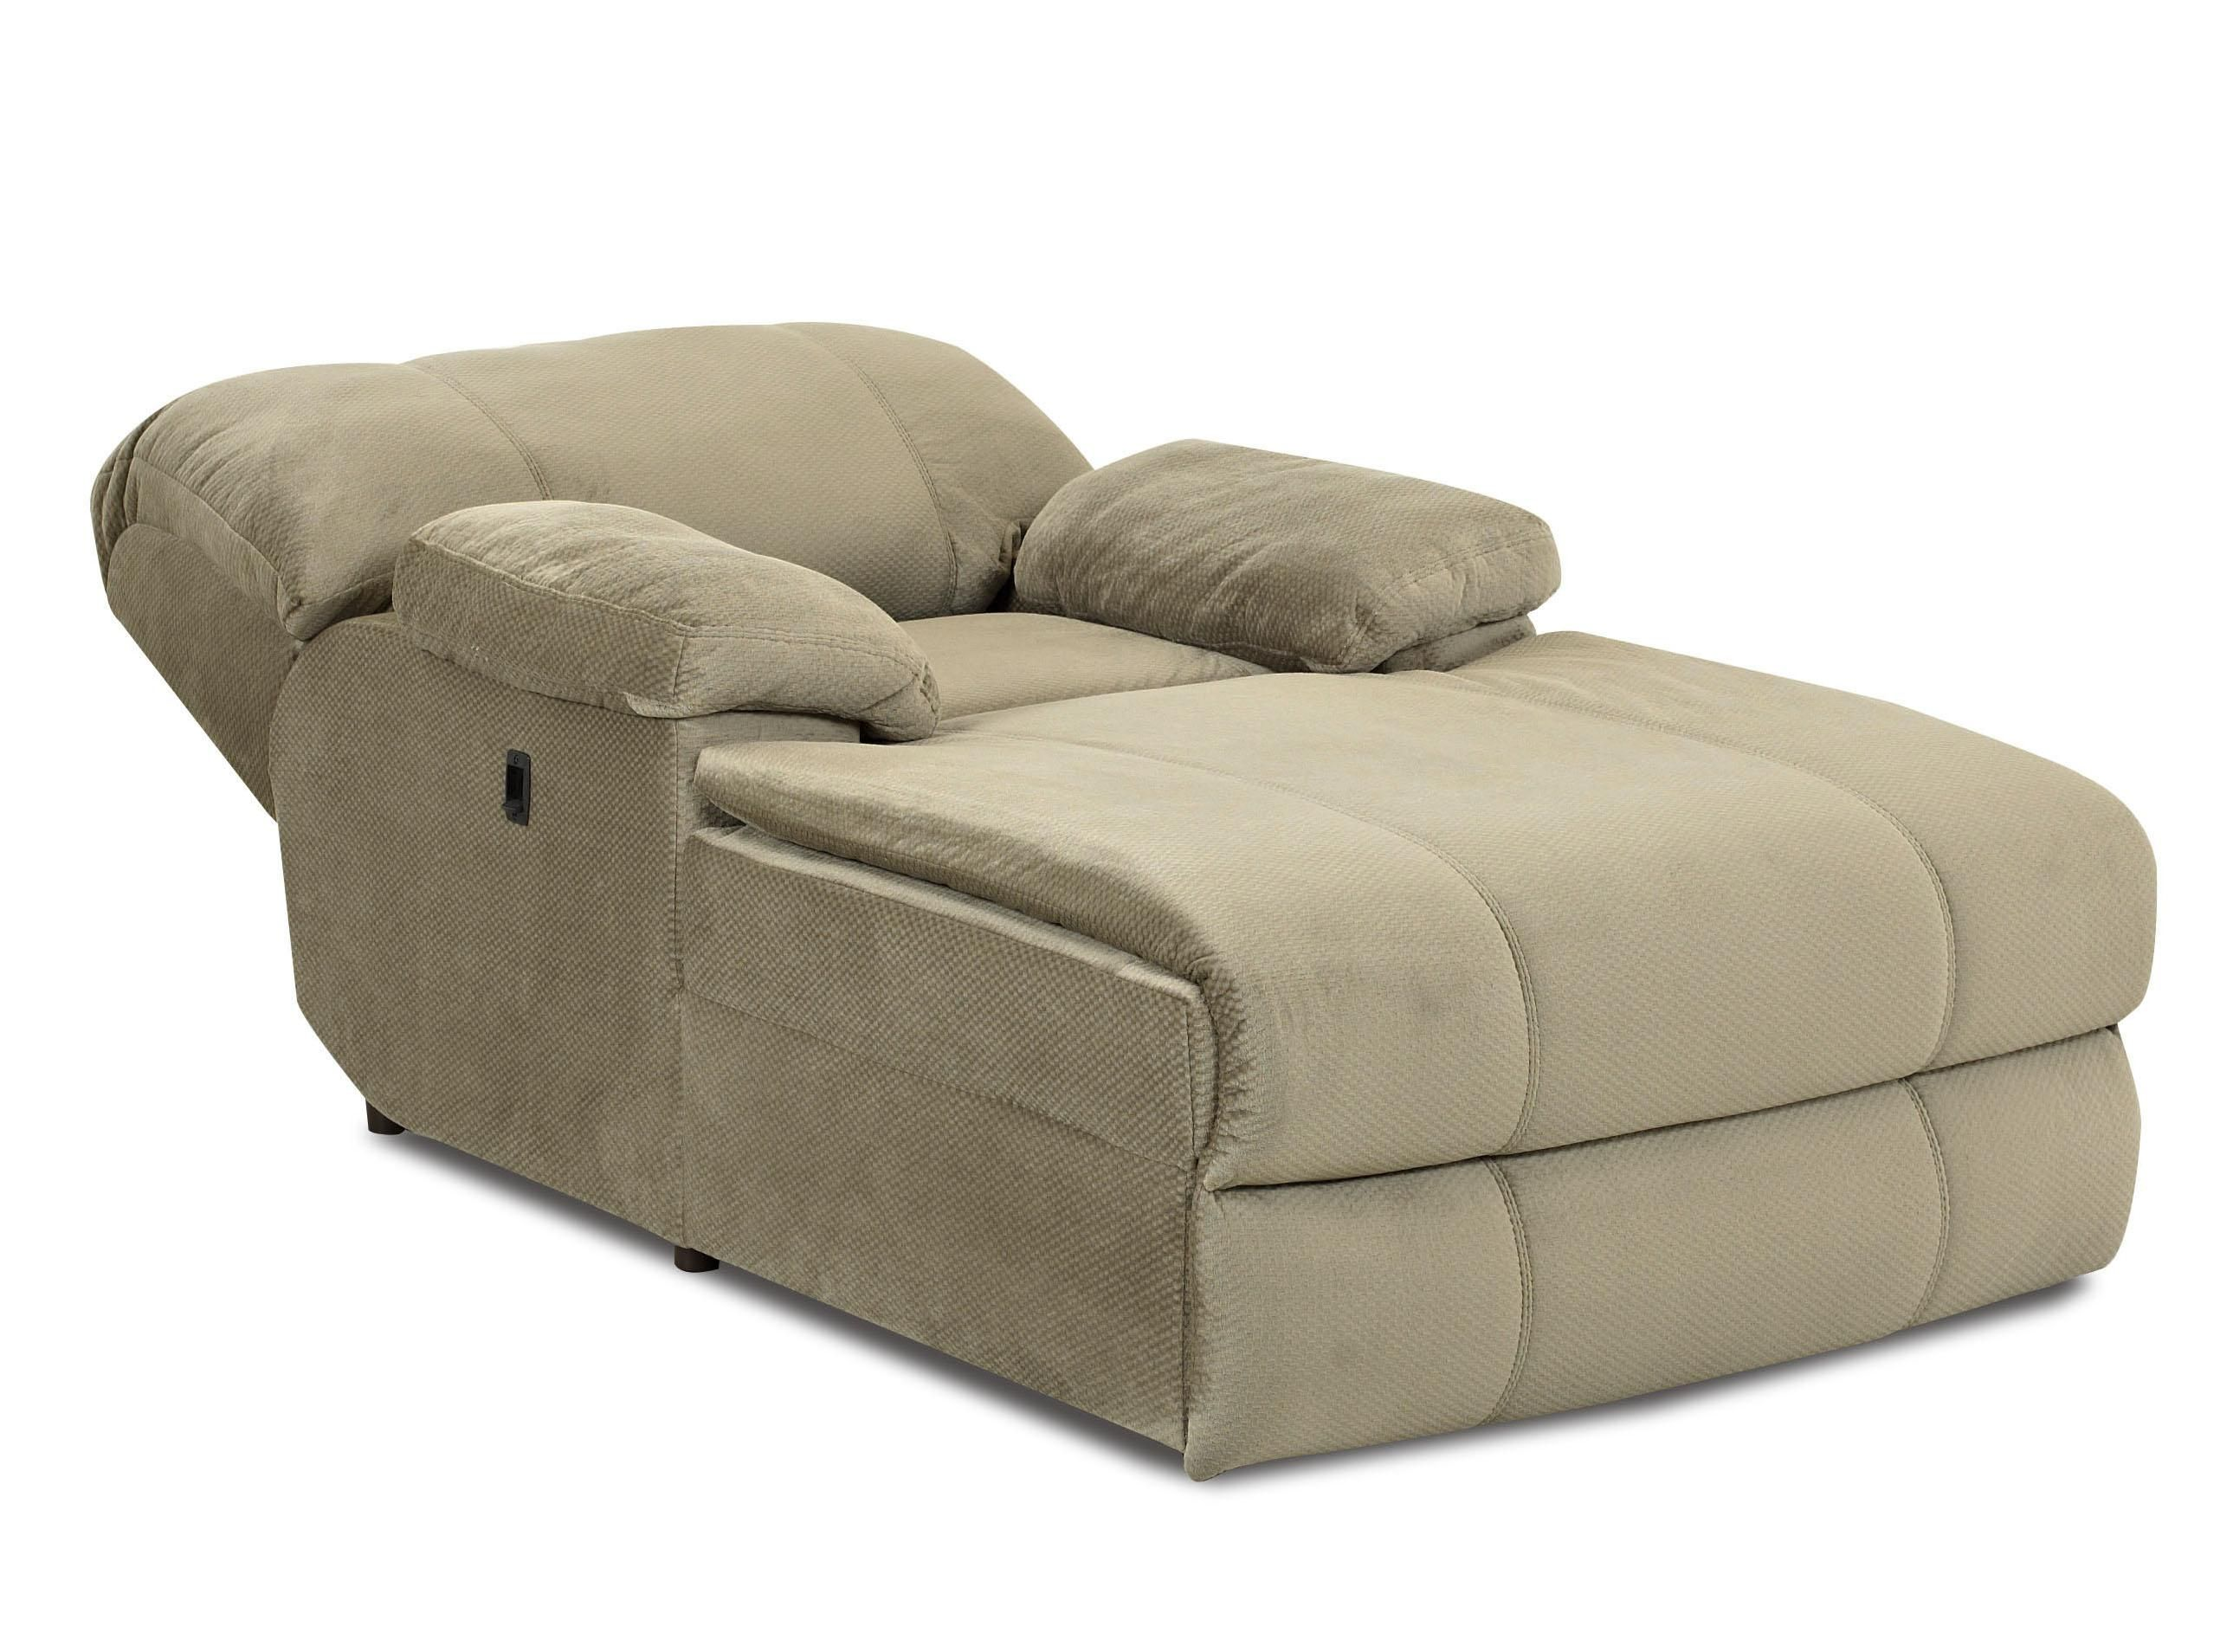 Klaussner Kensington Reclining Chaise Lounge   Value City Furniture   Chaise  New Jersey, NJ, And Staten Island